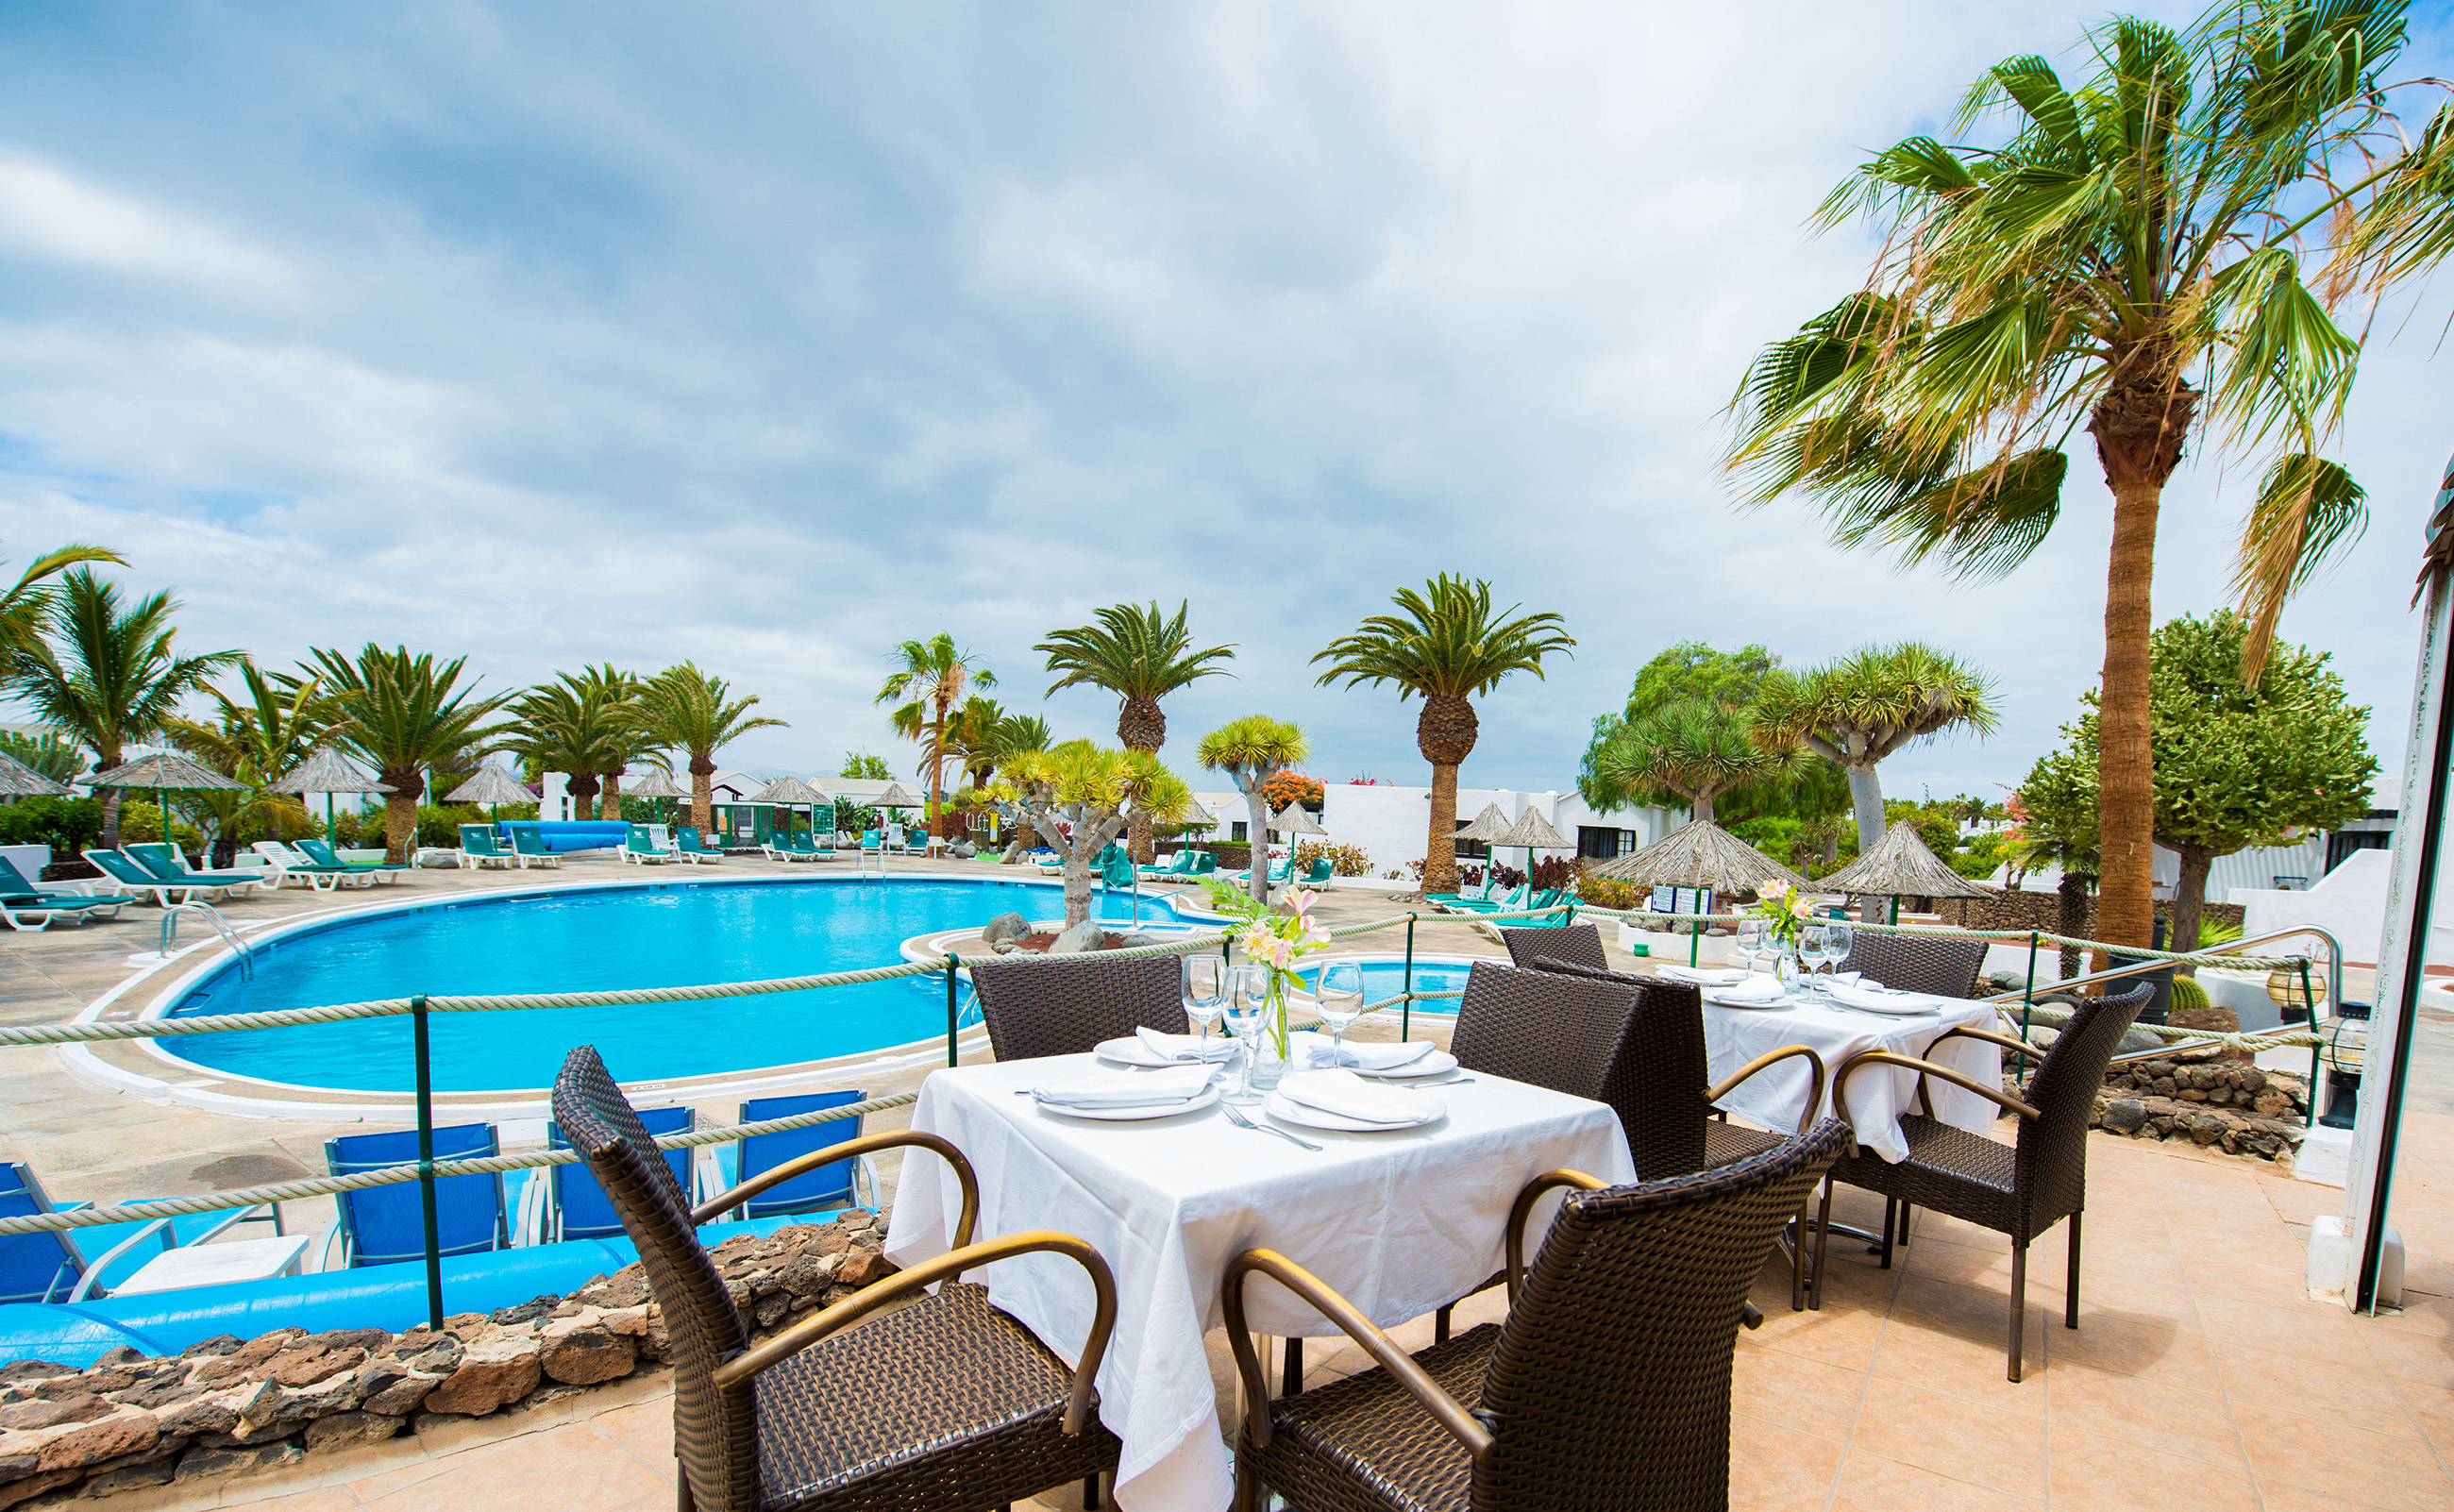 Las Casitas Pool Restaurant